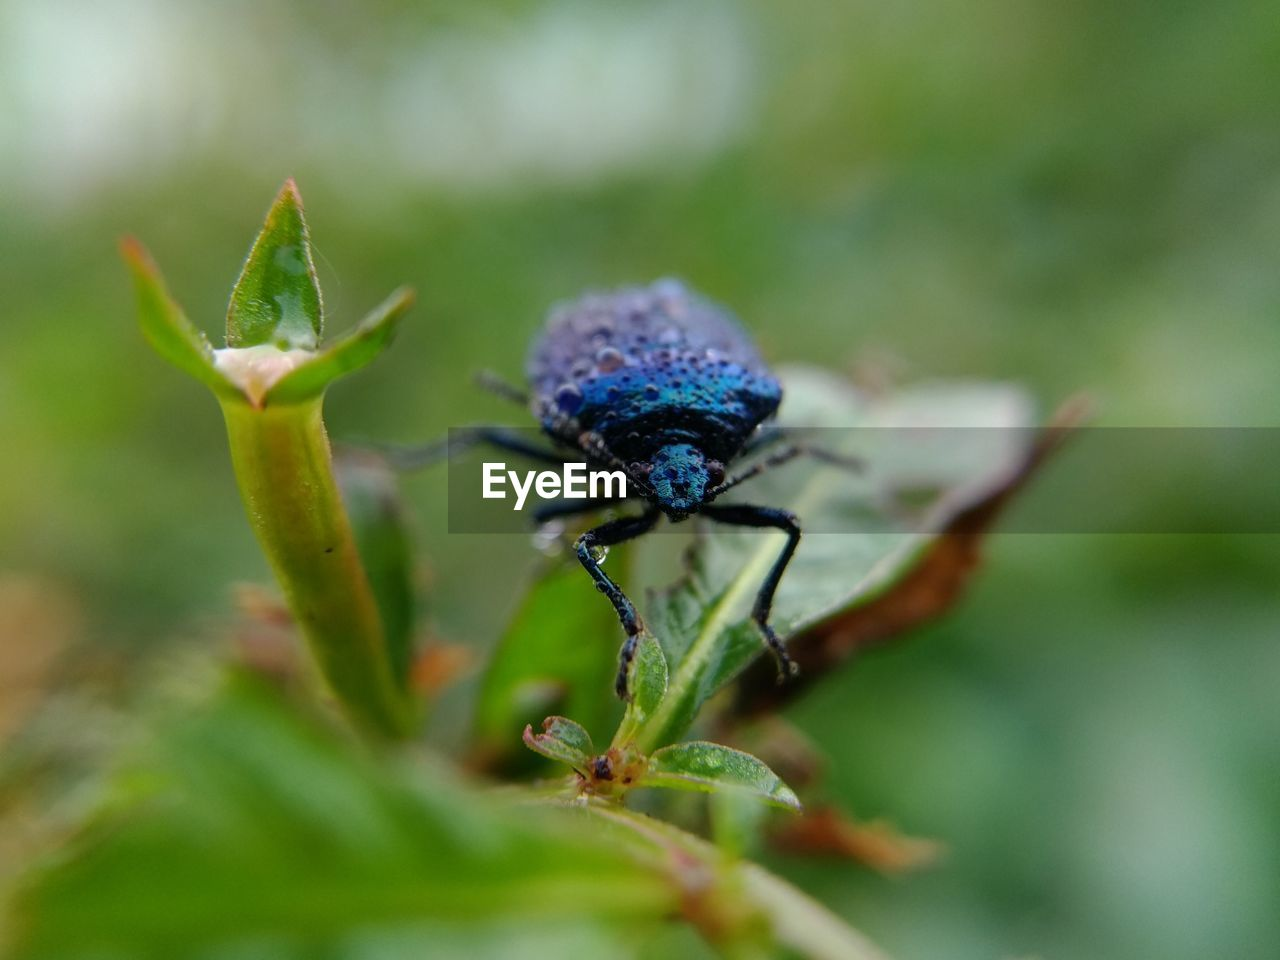 invertebrate, animal wildlife, insect, animal themes, animal, animals in the wild, close-up, one animal, selective focus, plant, plant part, green color, leaf, day, nature, no people, growth, zoology, beetle, beauty in nature, animal eye